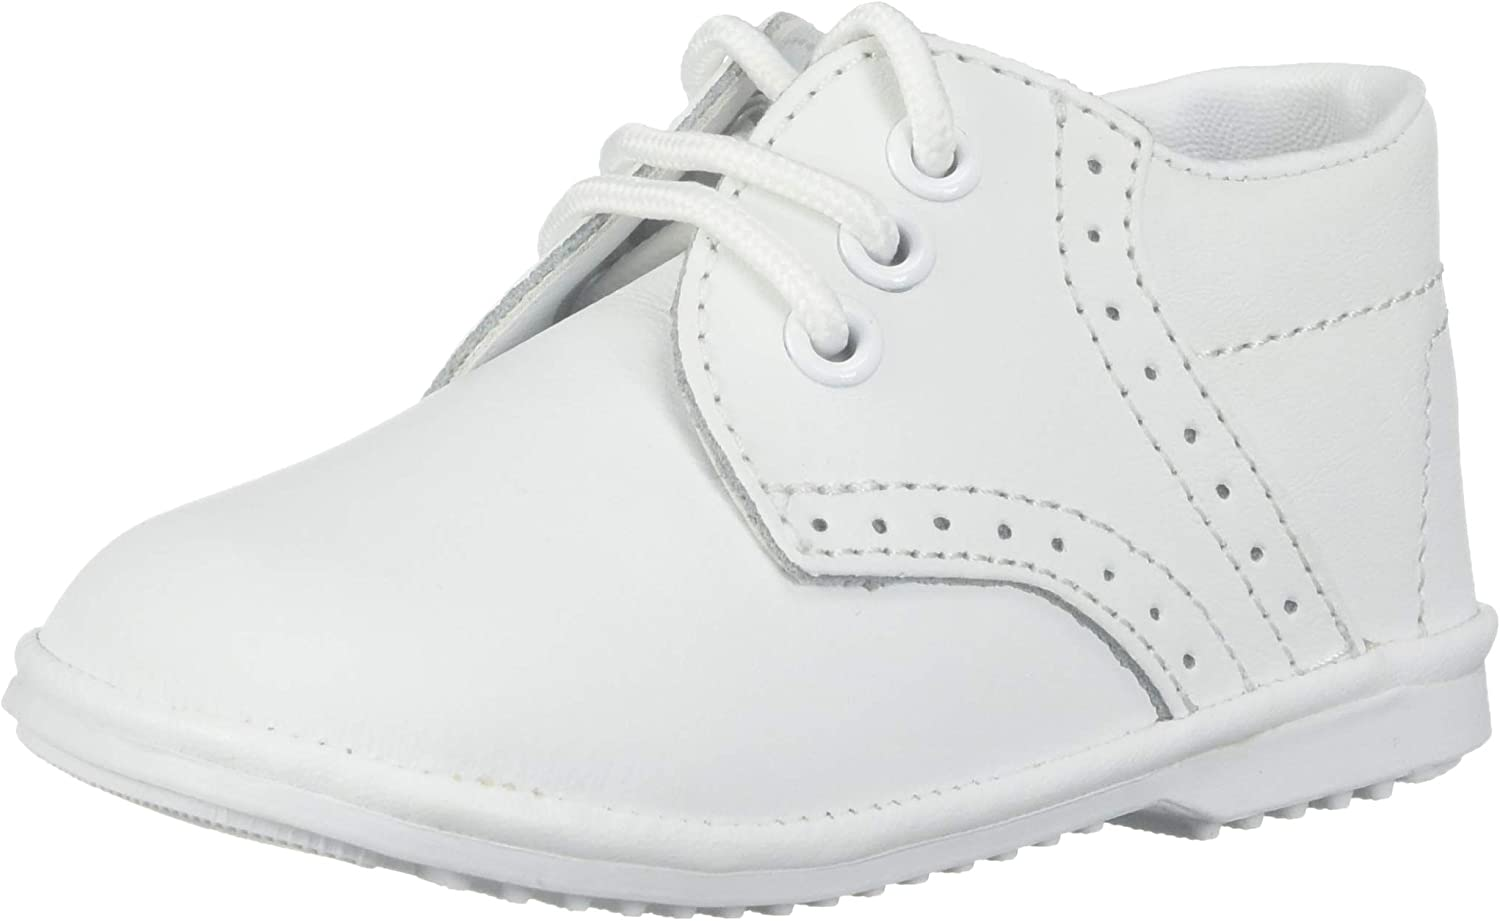 Angels Garment Baby Toddler Boys White Oxford Dress Shoes 1-7